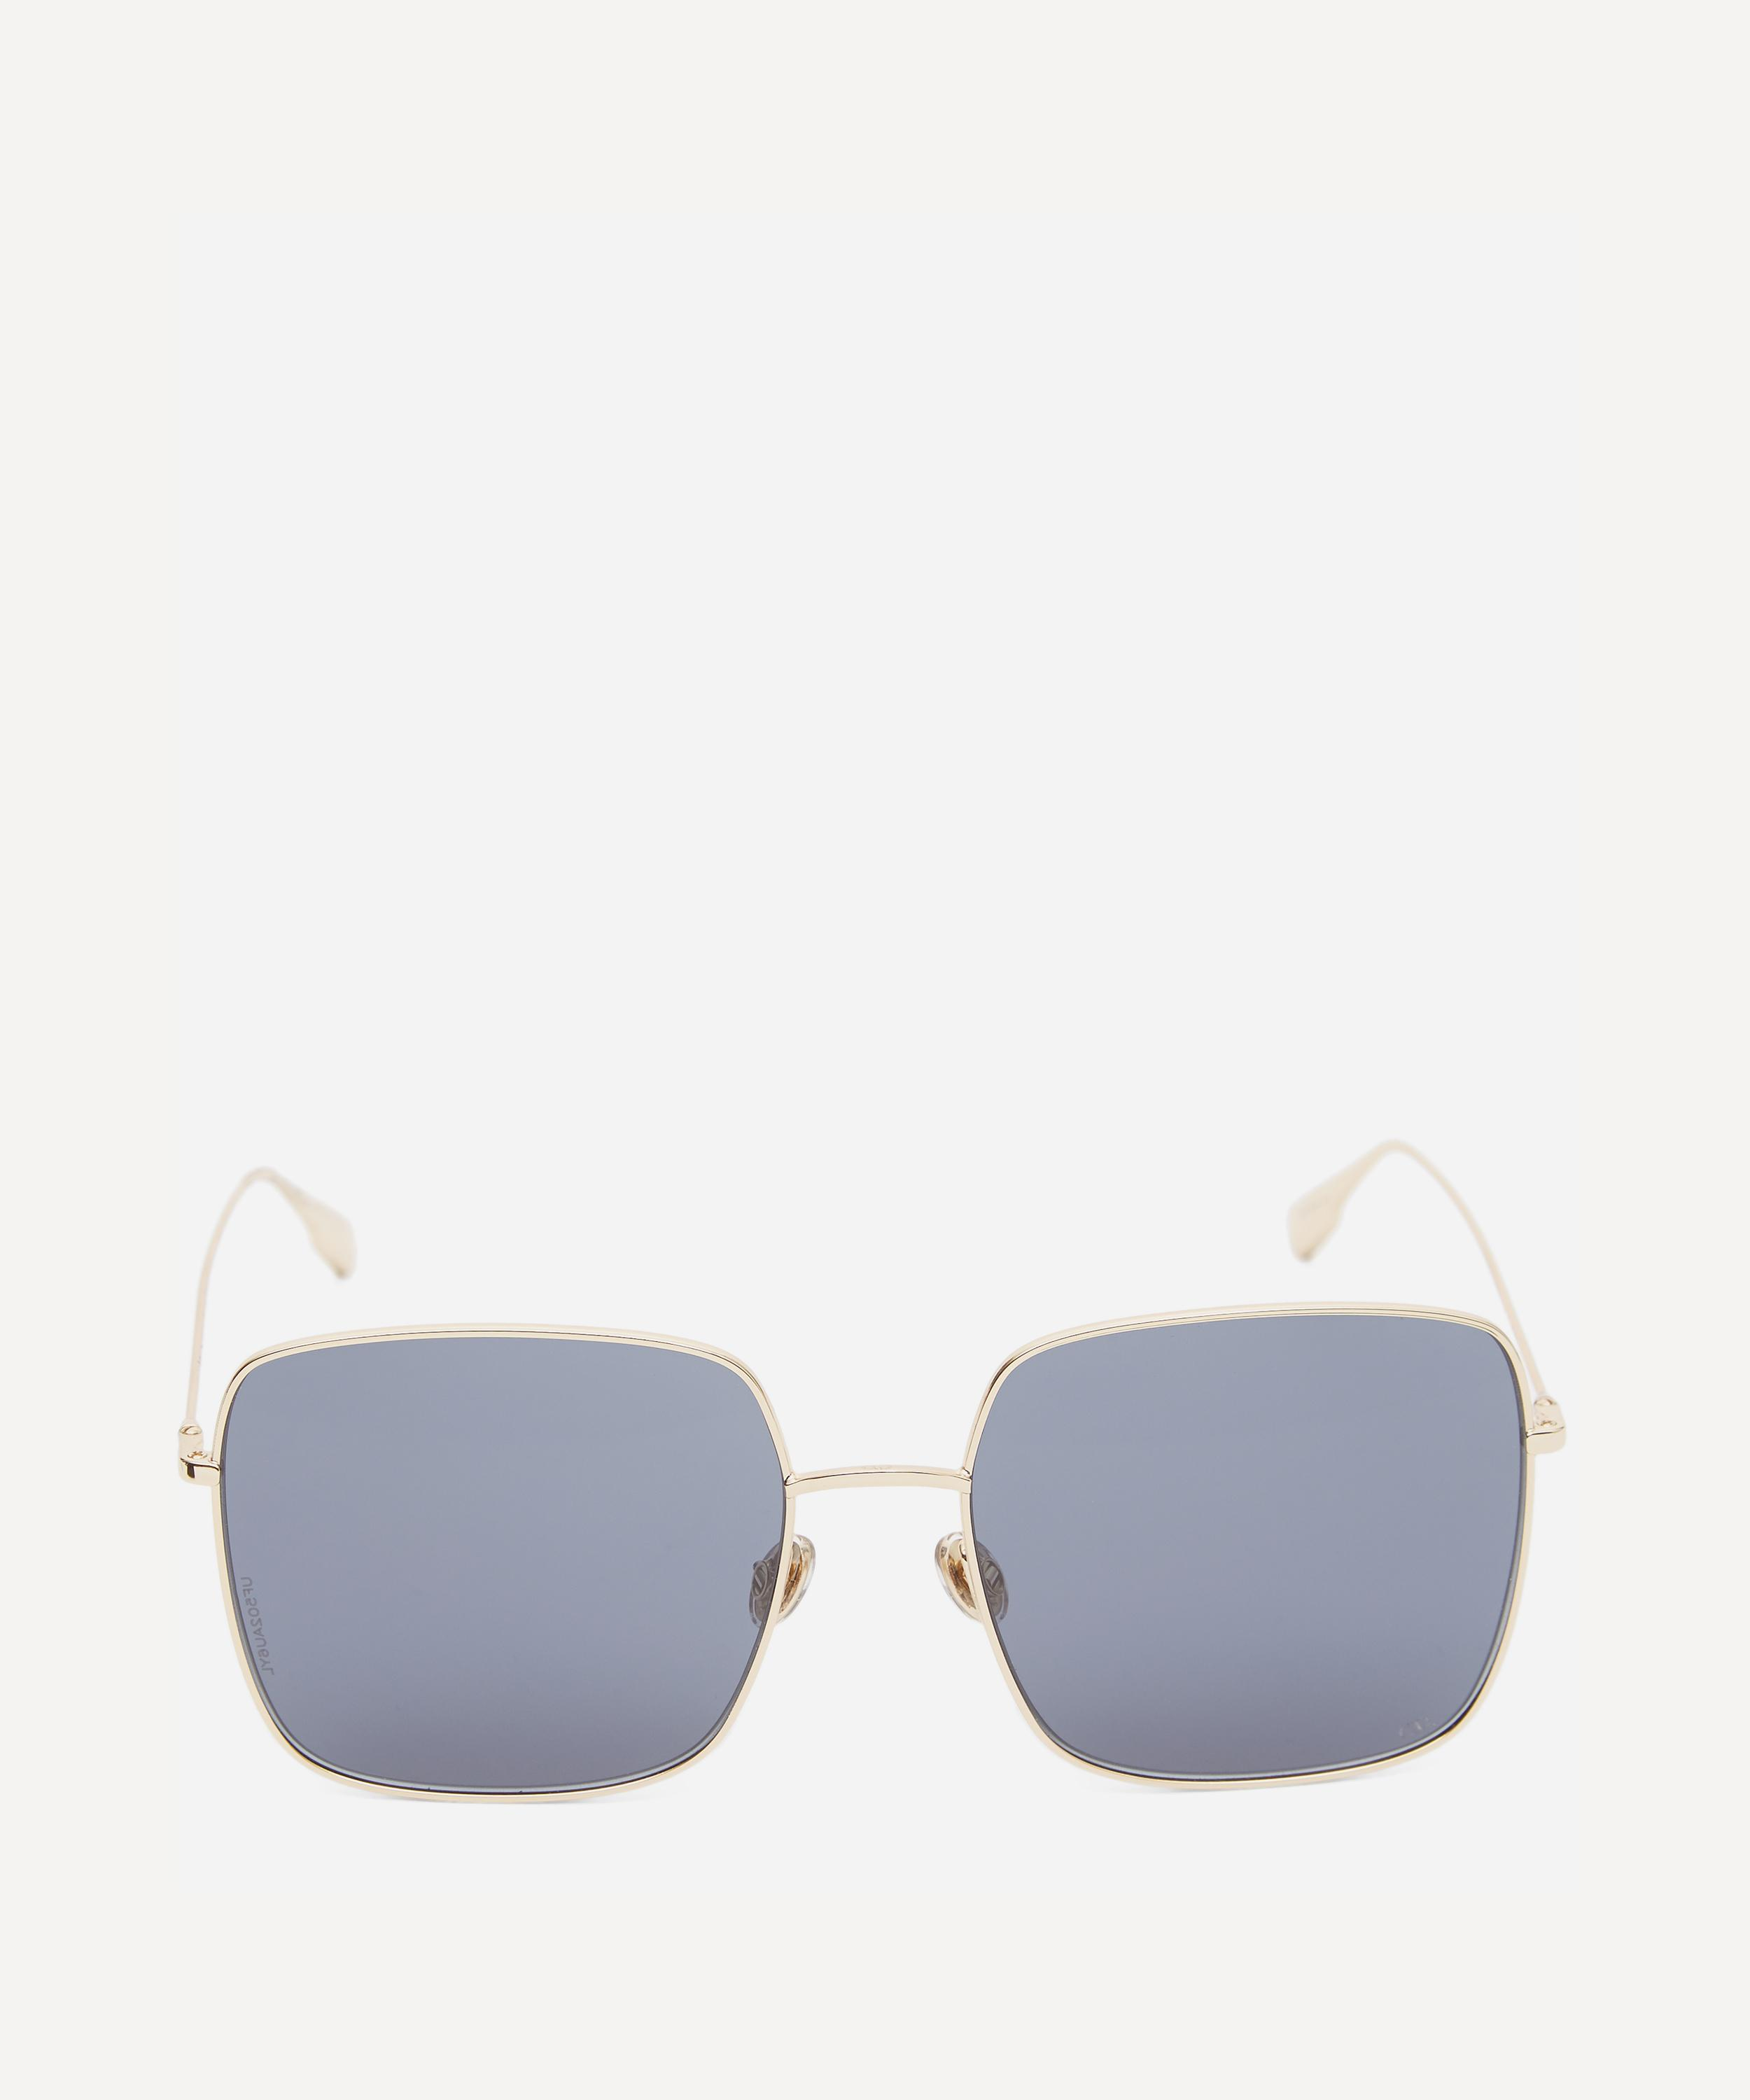 7707304167ad Stellaire Square Sunglasses